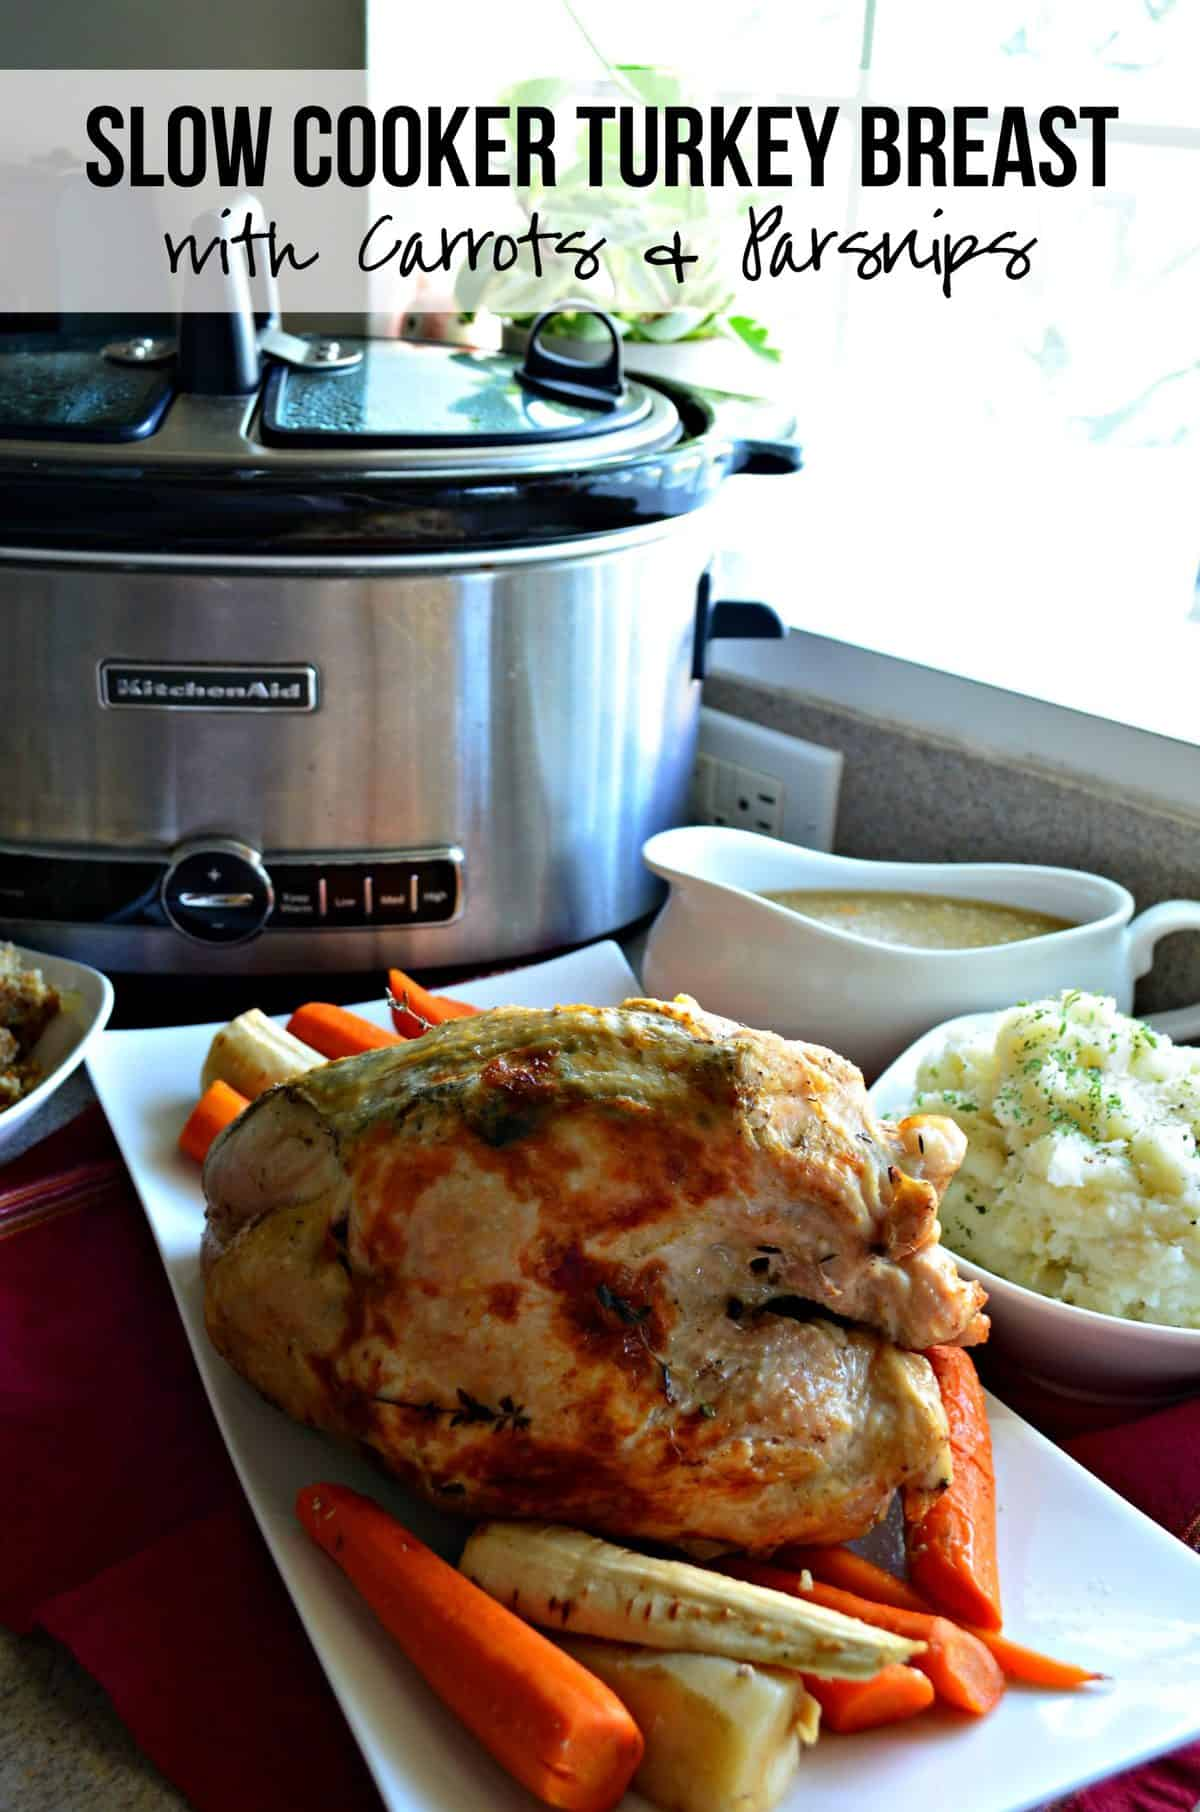 whole cooked turkey with Carrots & Parsnips on rectangular platter next to bowl of mashed potatoes and gravy boat.